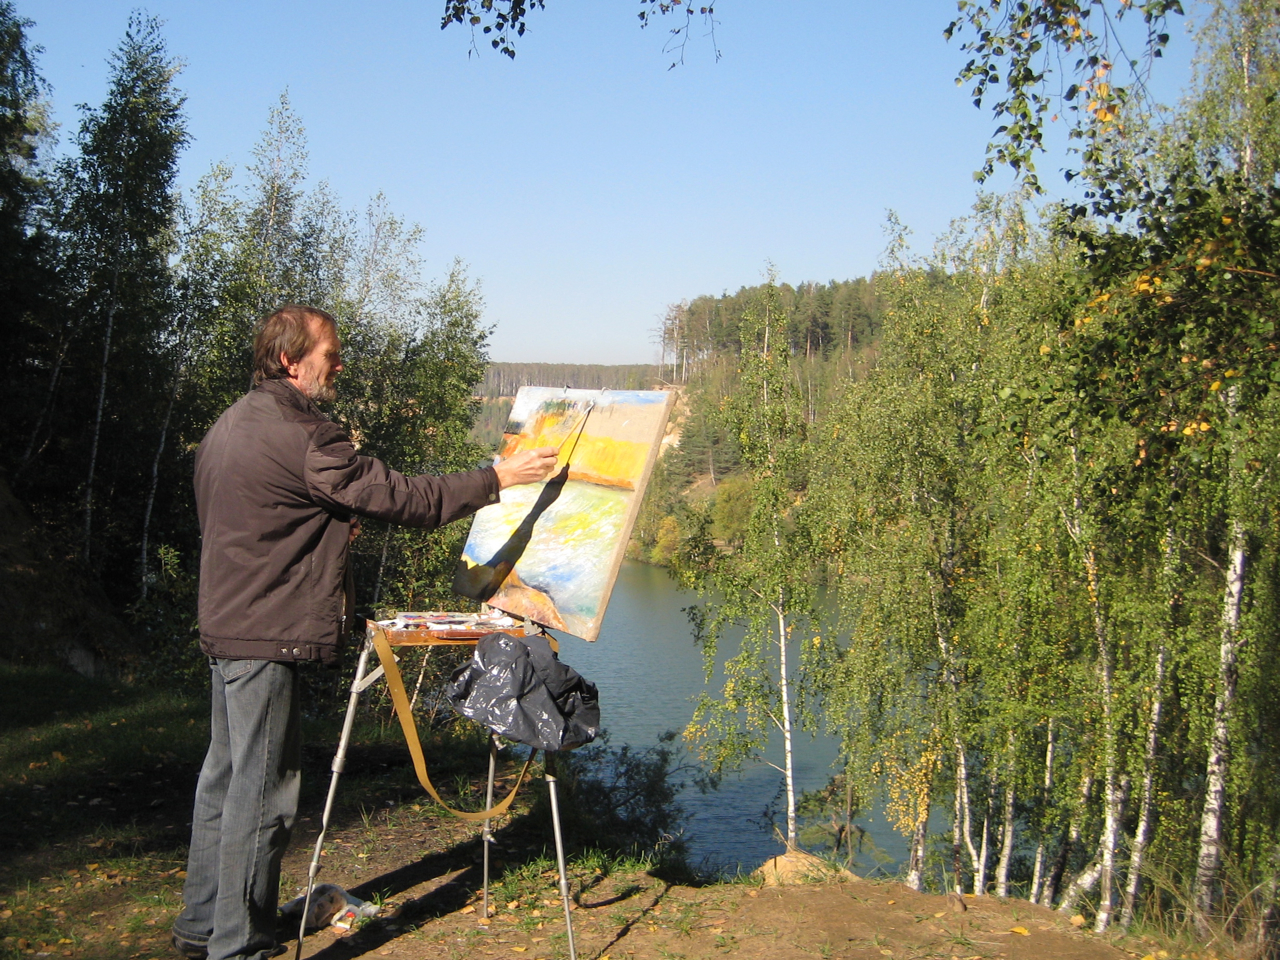 painter-on-the-banks-of-the-dzerzhinsky-lakes